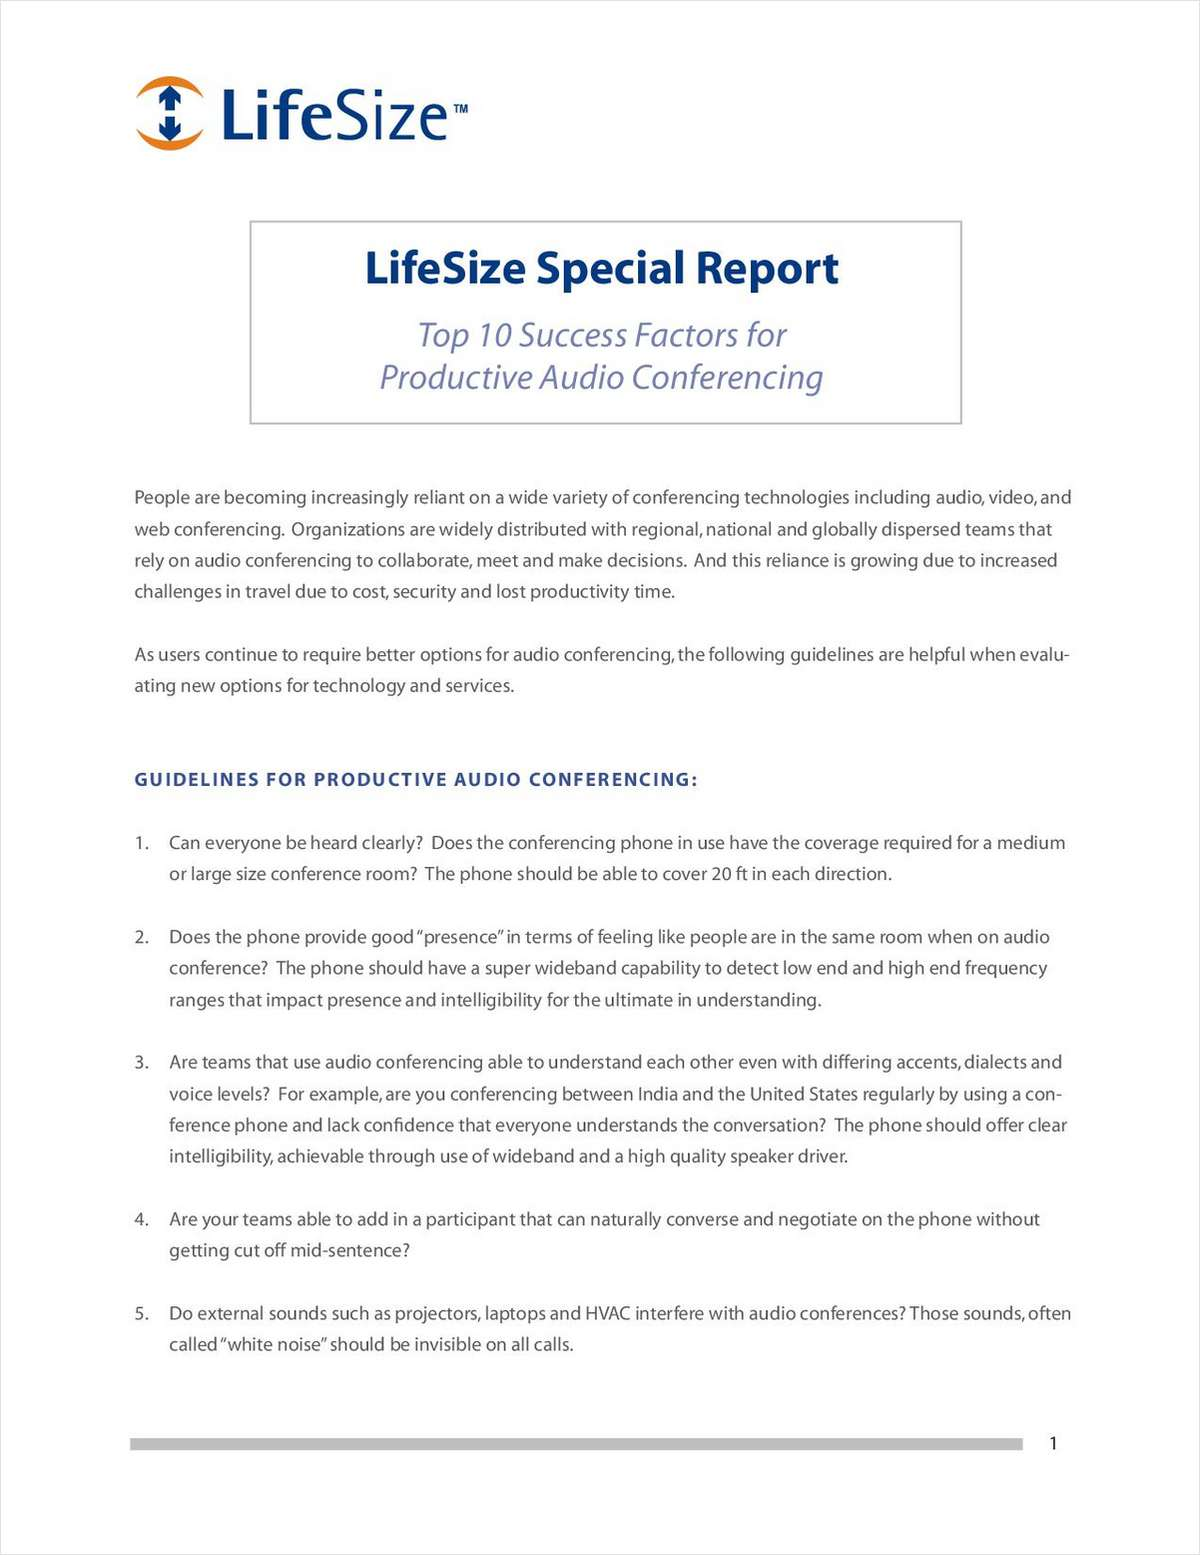 Top 10 Success Factors for Productive Audio Conferencing